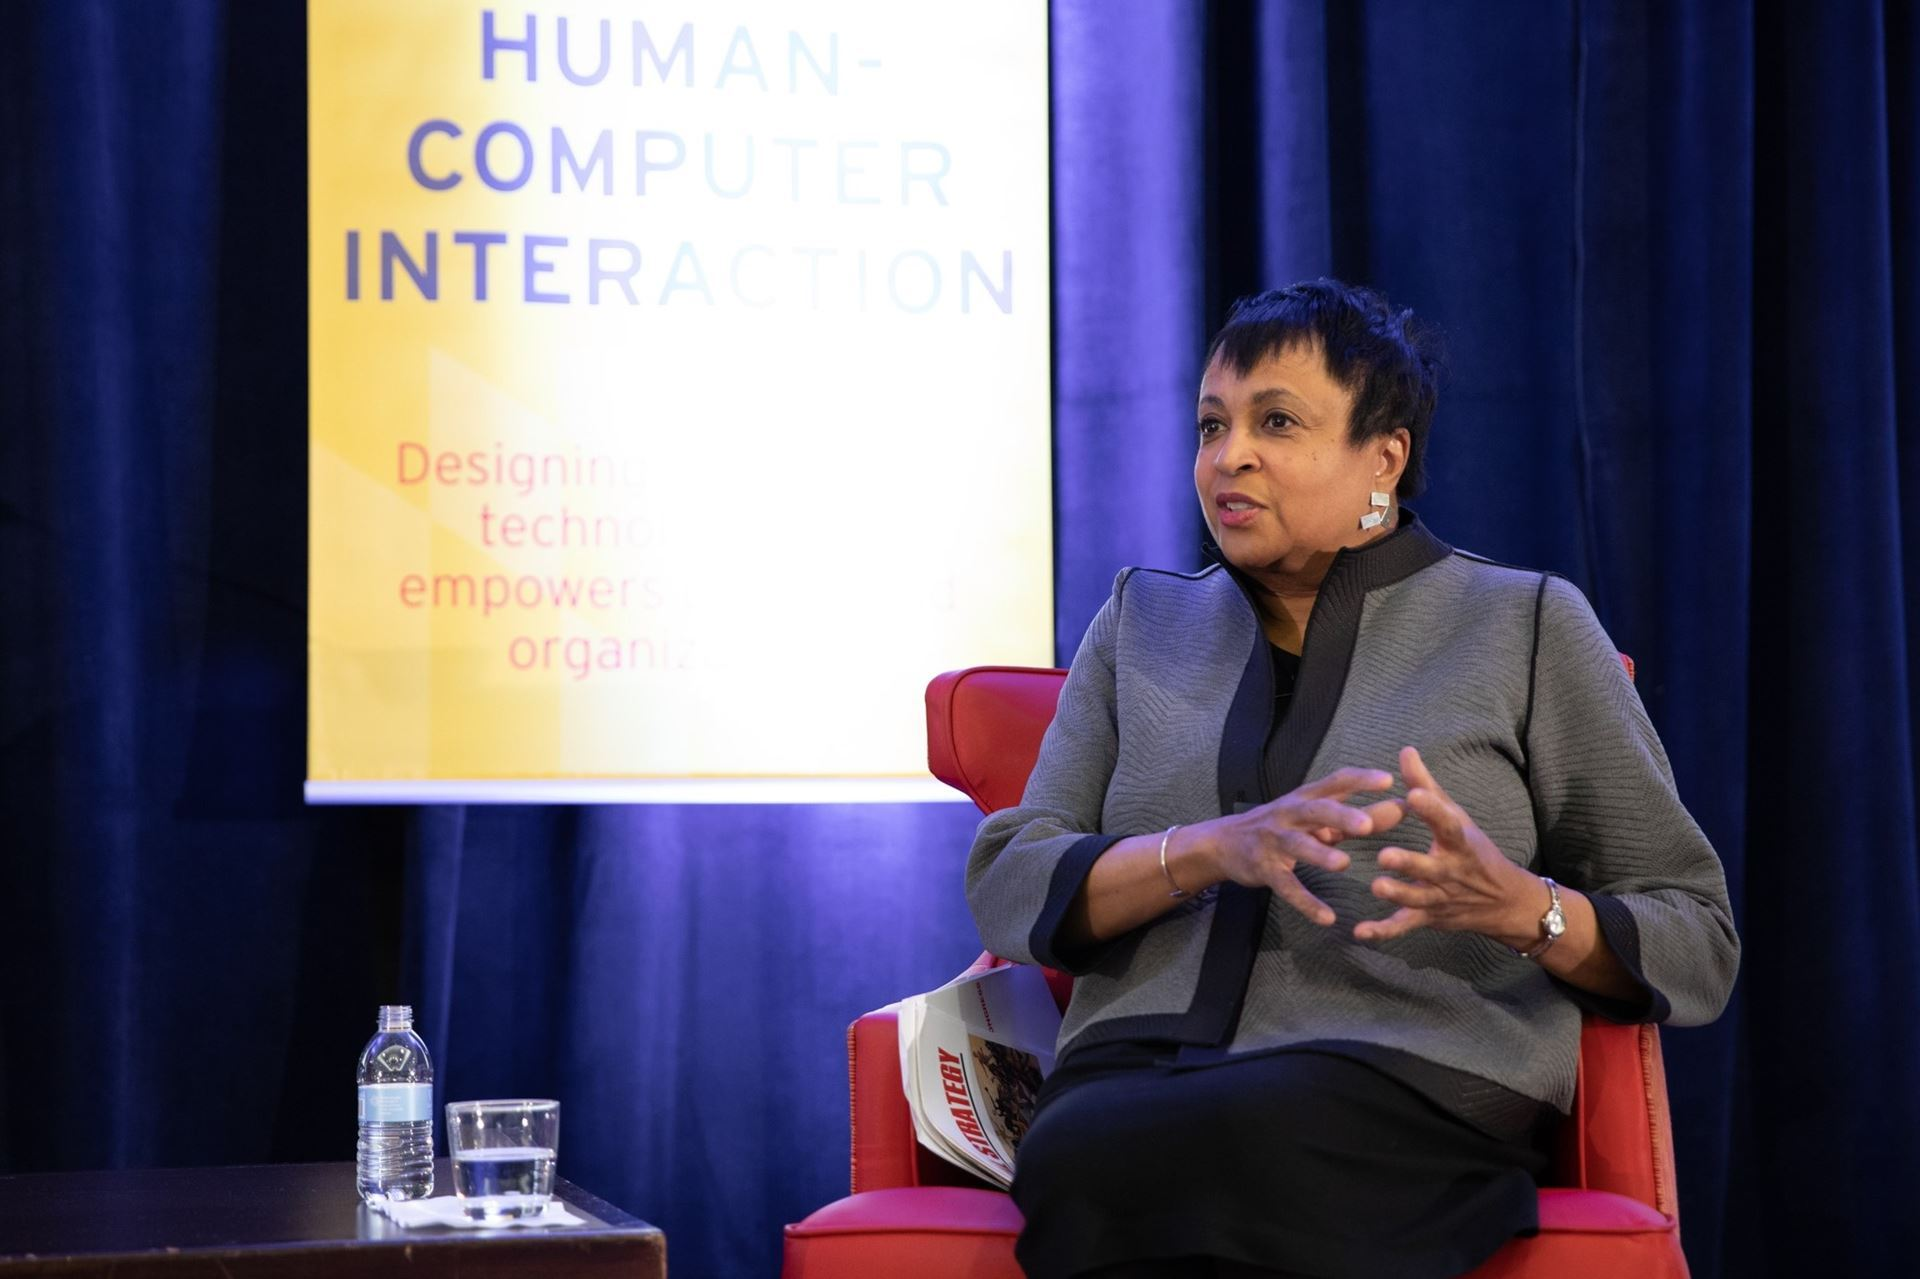 Carla Hayden, Librarian of Congress, speaking at the 2019 iSchools' iConference. (Image by Craig Taylor University of Maryland)